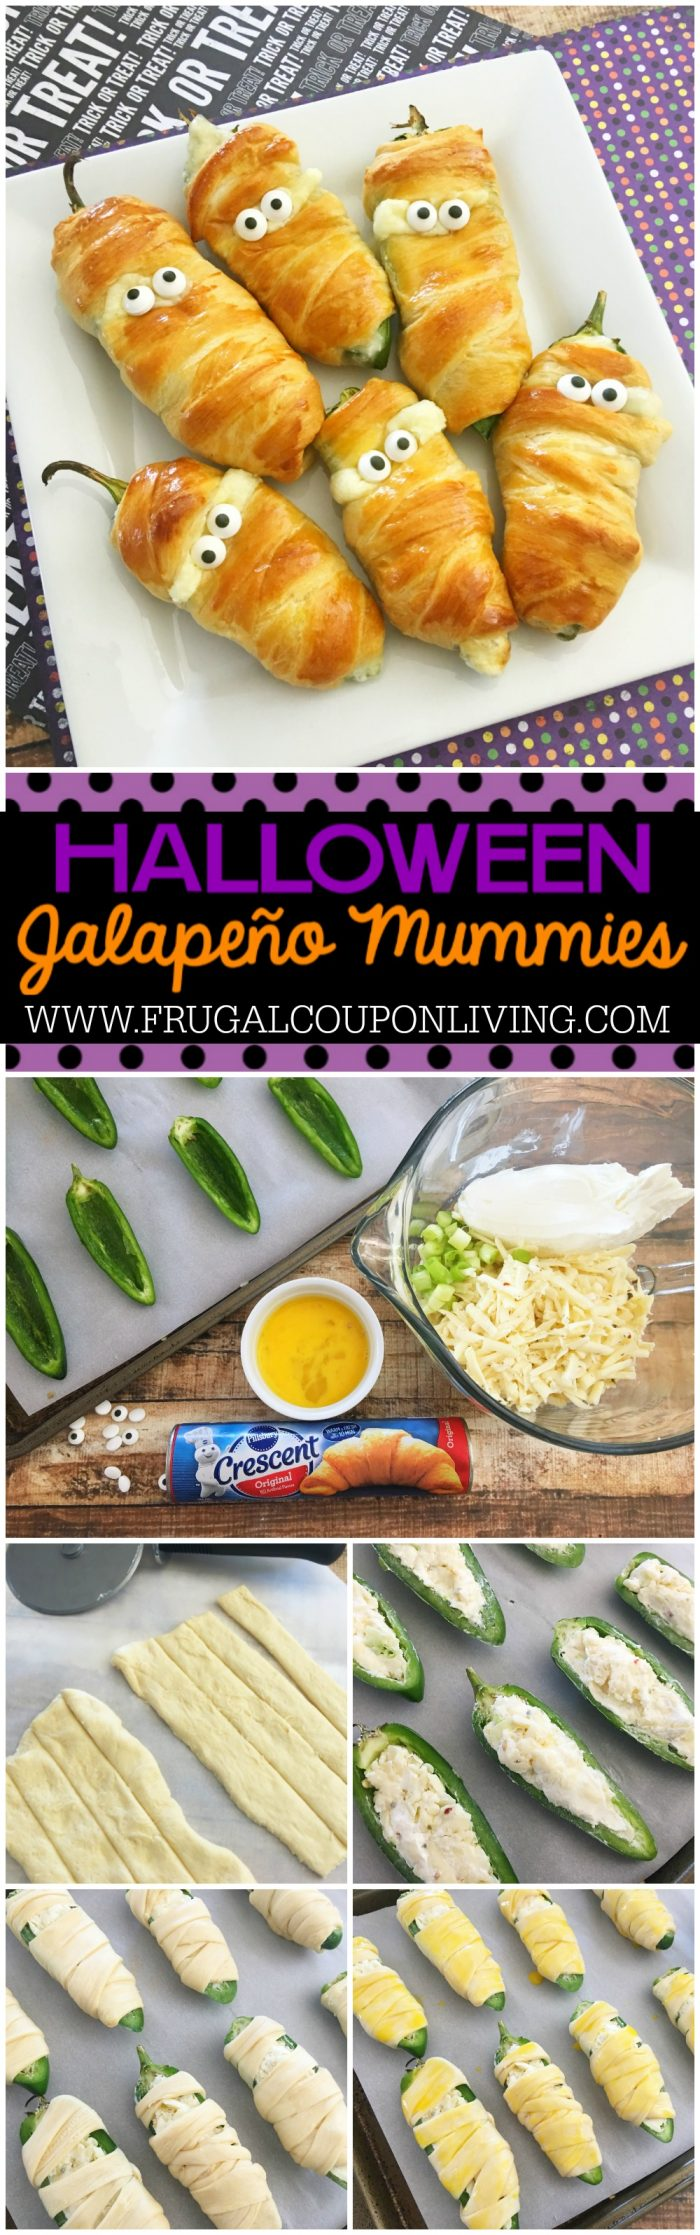 Halloween-Jalapeño-Mummies-long-collage-frugal-coupon-living